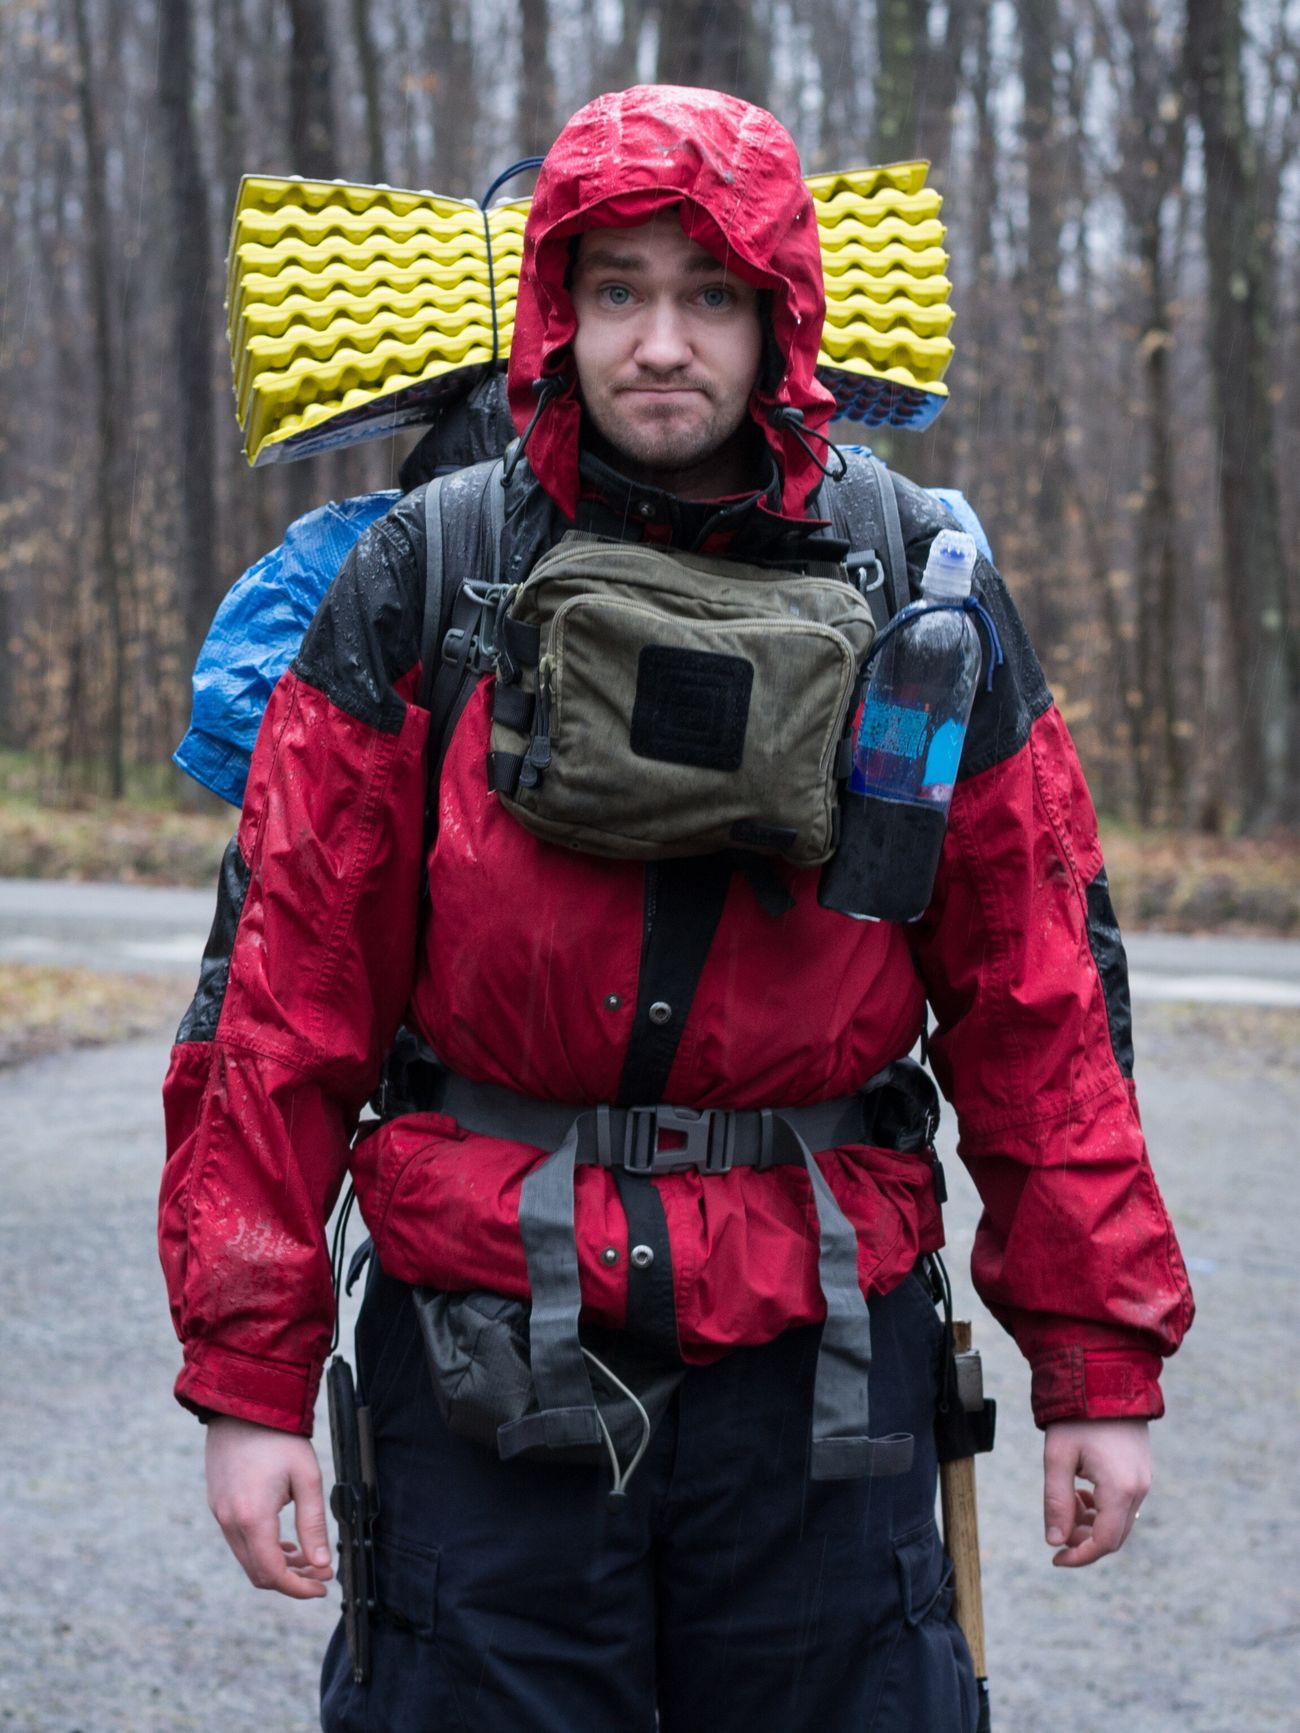 Yours Truly, about to head out on our latest backpacking trip. This isn't a technically perfect shot, but I don't have a lot of photos of myself. We had packed for winter, but it ended up being unseasonably warm. Photo credit goes to my beautiful wife. One Person Warm Clothing Outdoors Winter Front View Real People Camping Travel Photography Pennsylvania National Forest Nature Backpacking Hiking Allegheny National Forest Cold Temperature Man People Candid Rain